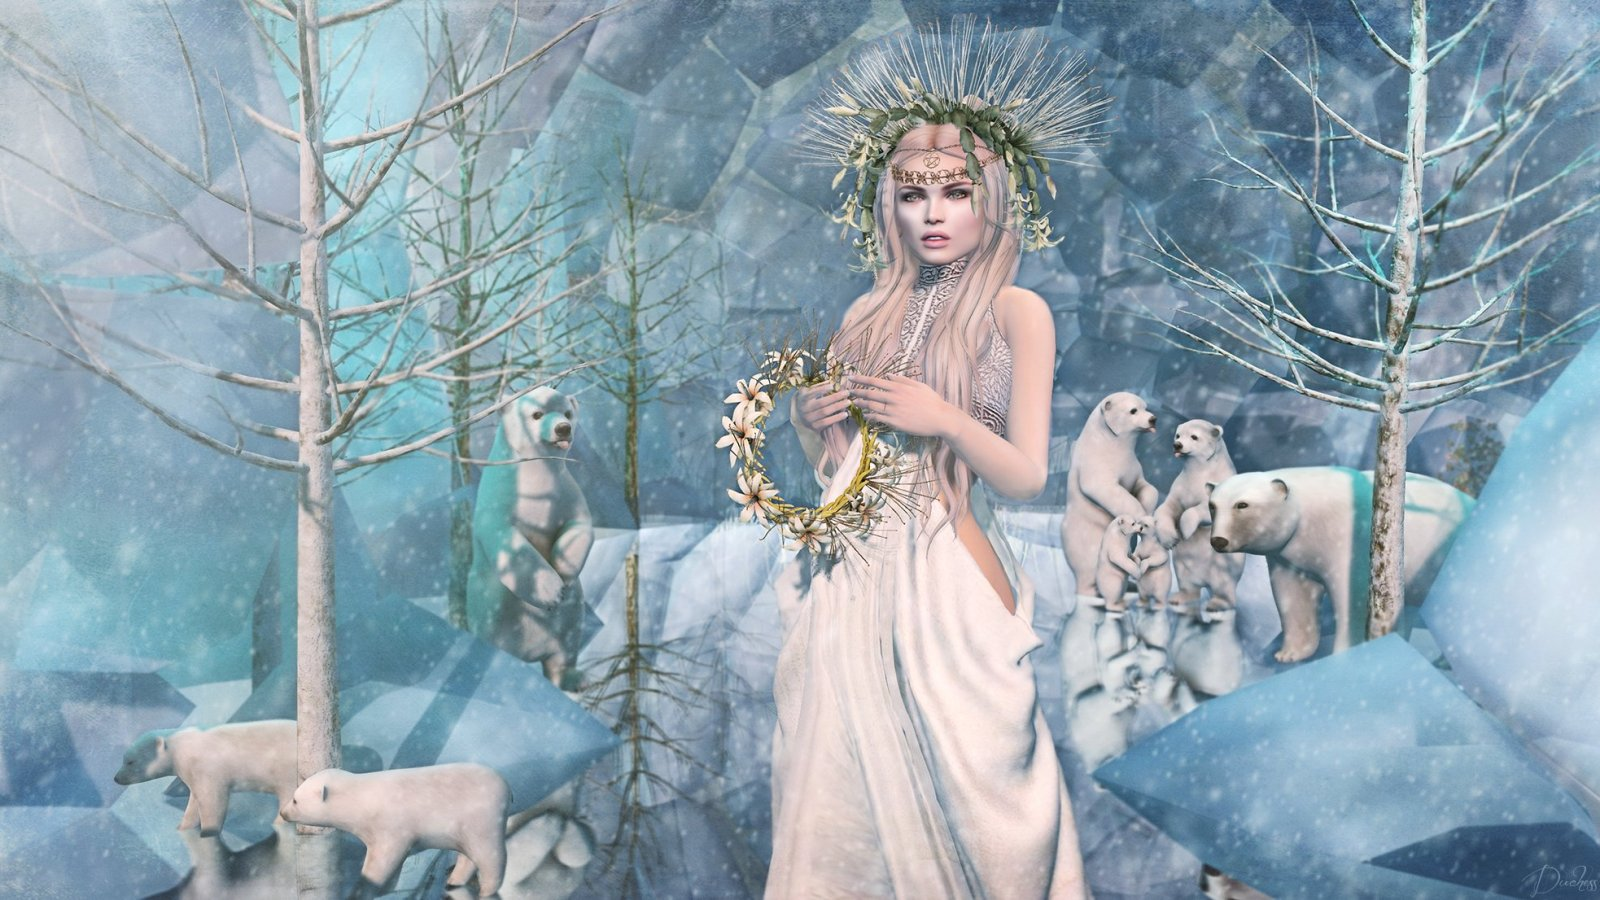 A Winter Solstice in the Mystic Realms